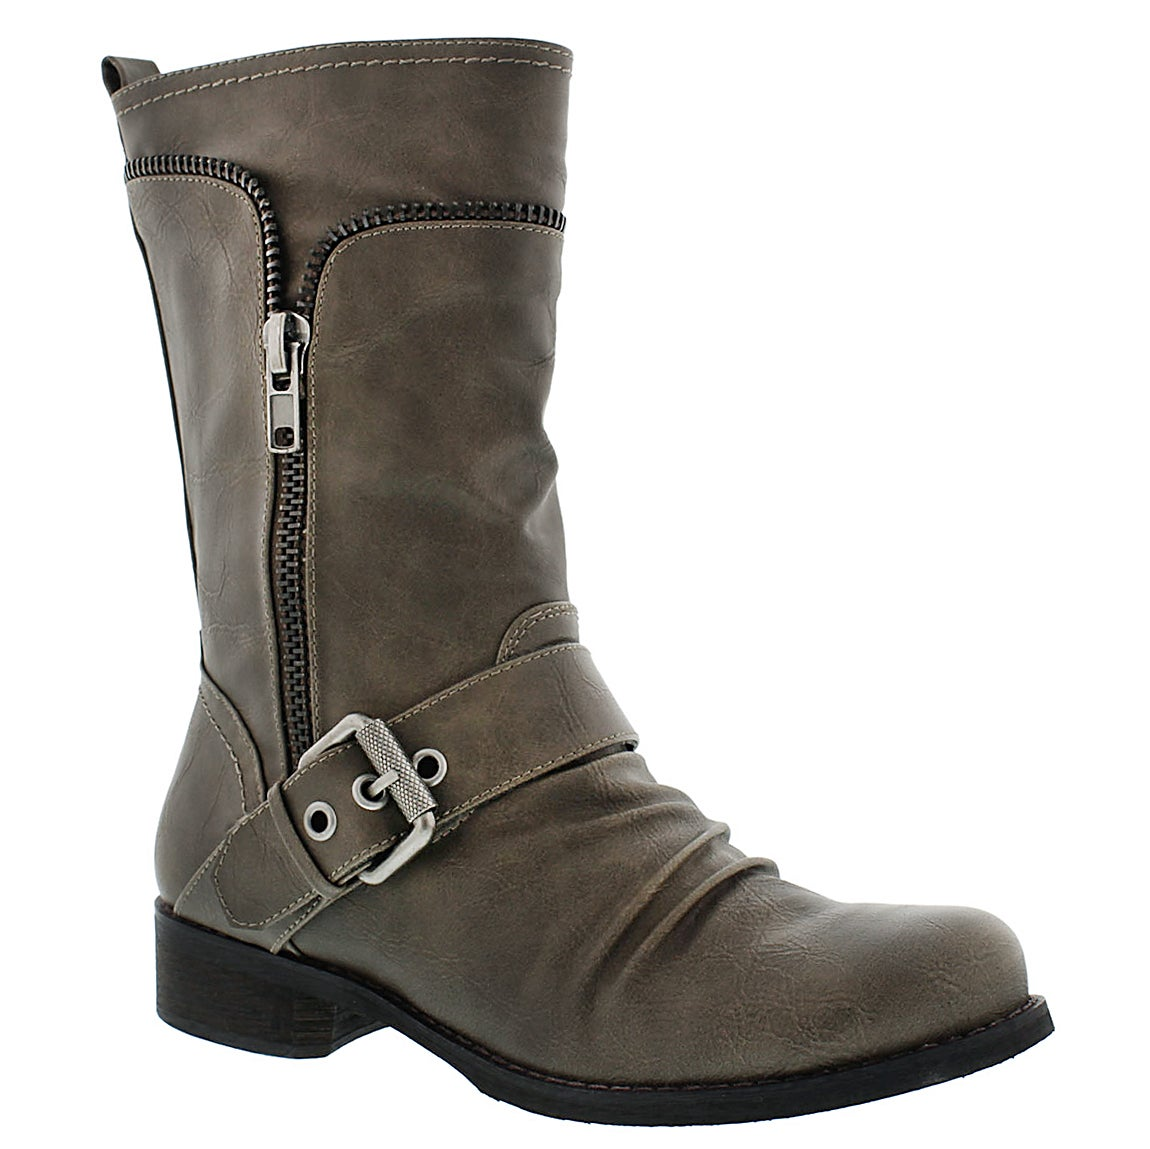 Lds Bellamy grey casual buckle boot